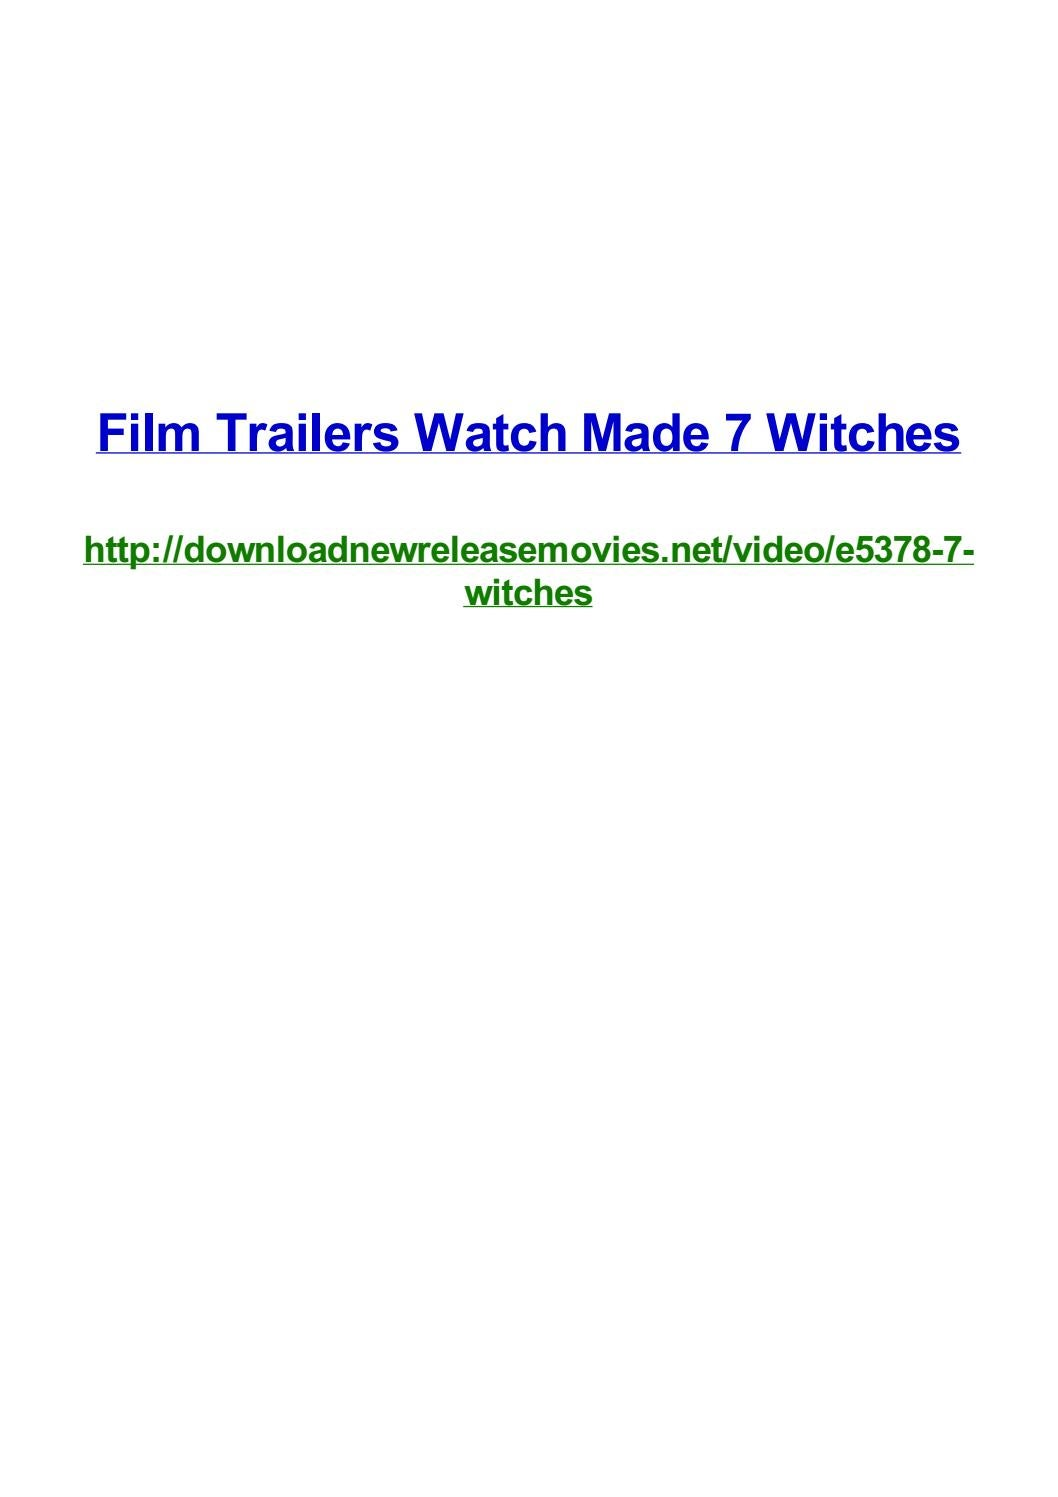 Film trailers watch made 7 witches by Frank Seamons - issuu